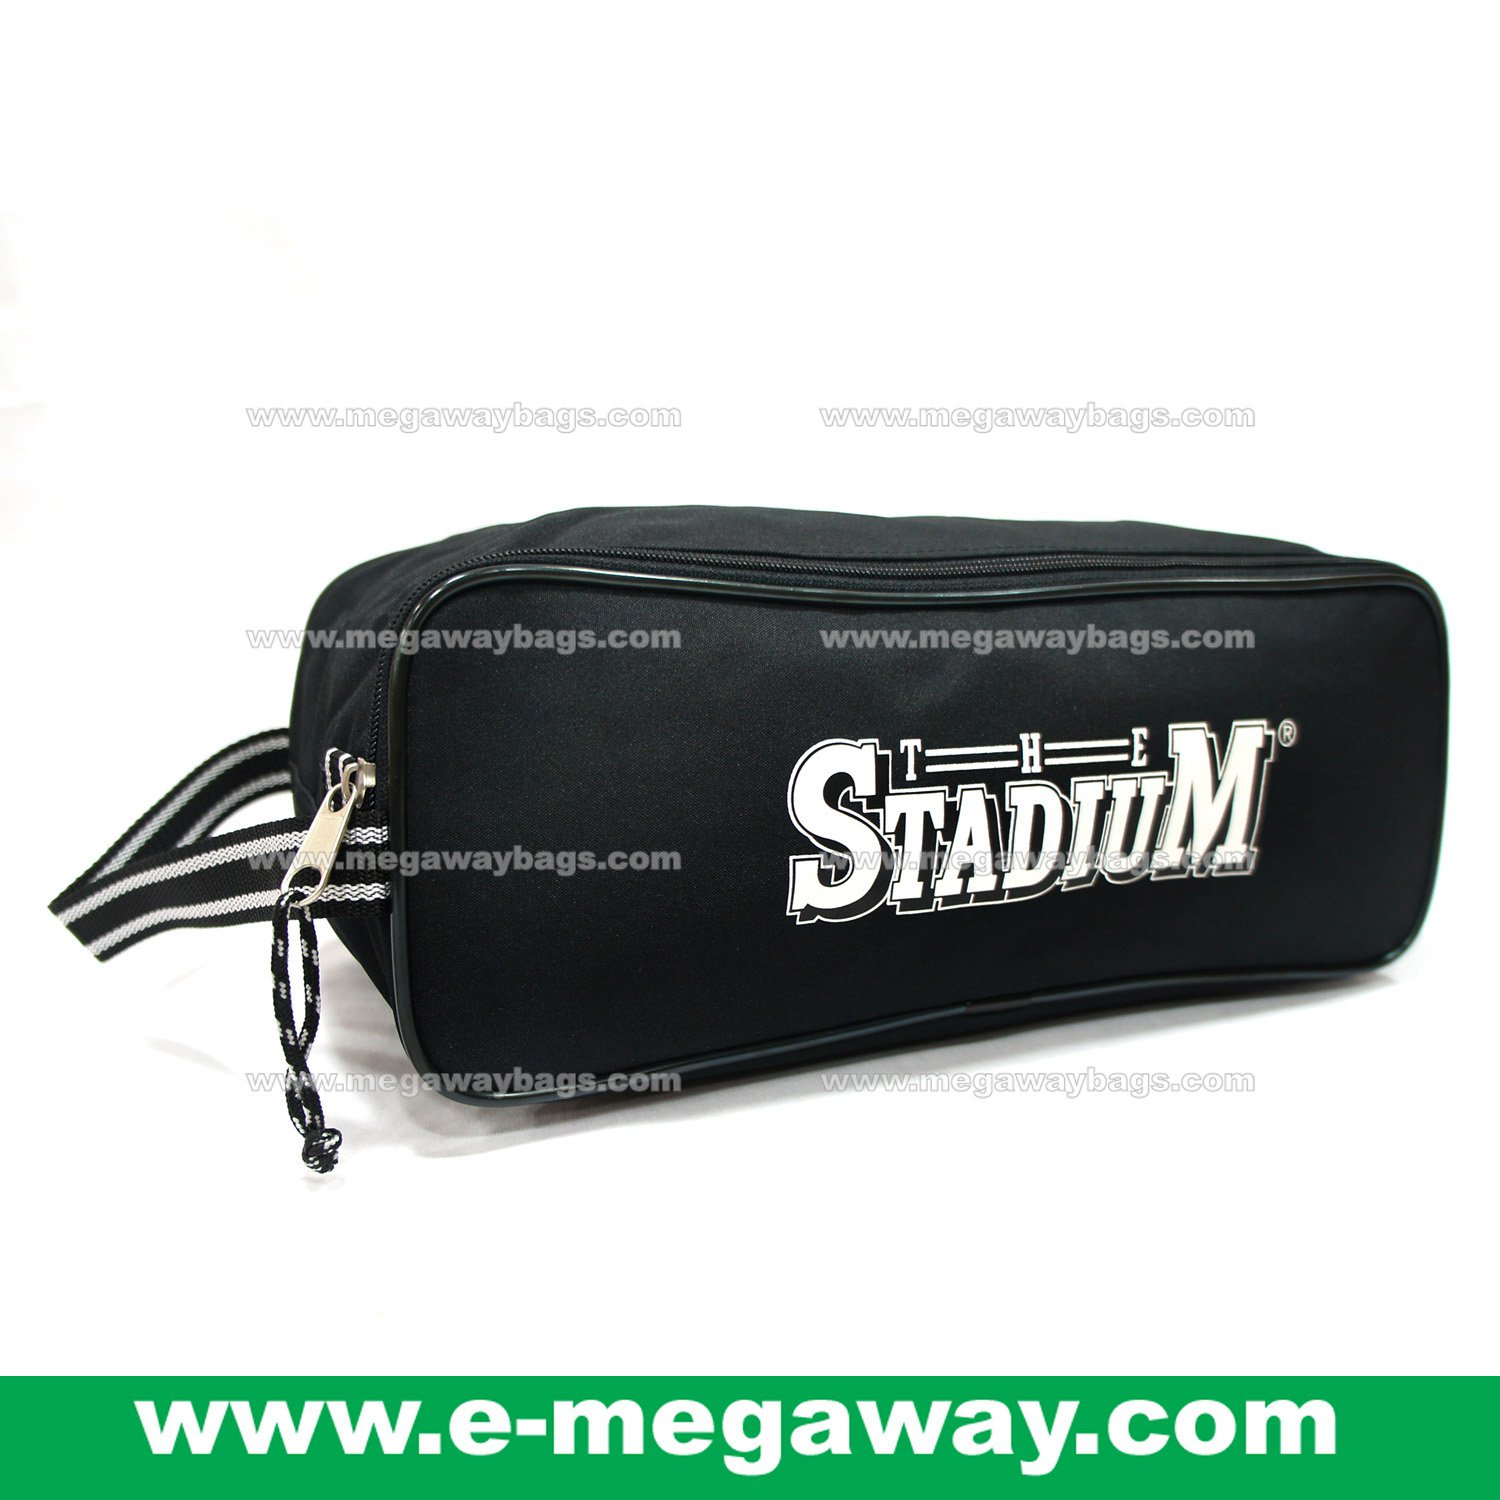 Stadium Soccer Football Shoes Team Sports Kits Bag School Lessons MegawayBags #CC-0627